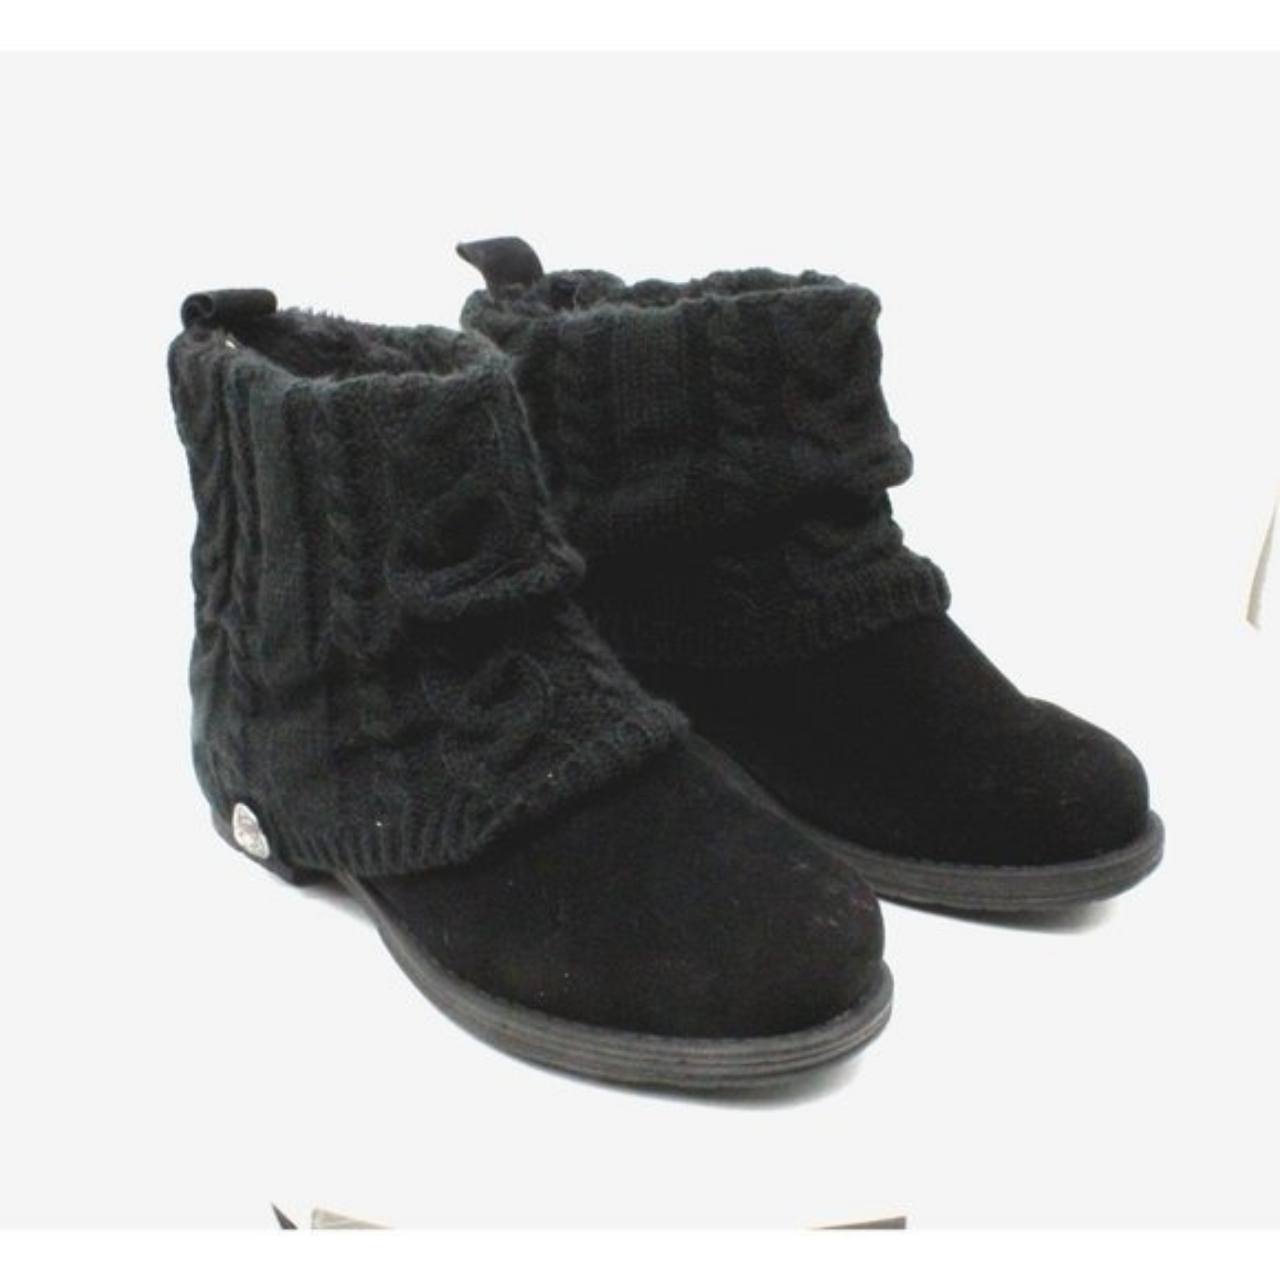 Product Image 1 - Muk Luks Women's Cass Boots  With